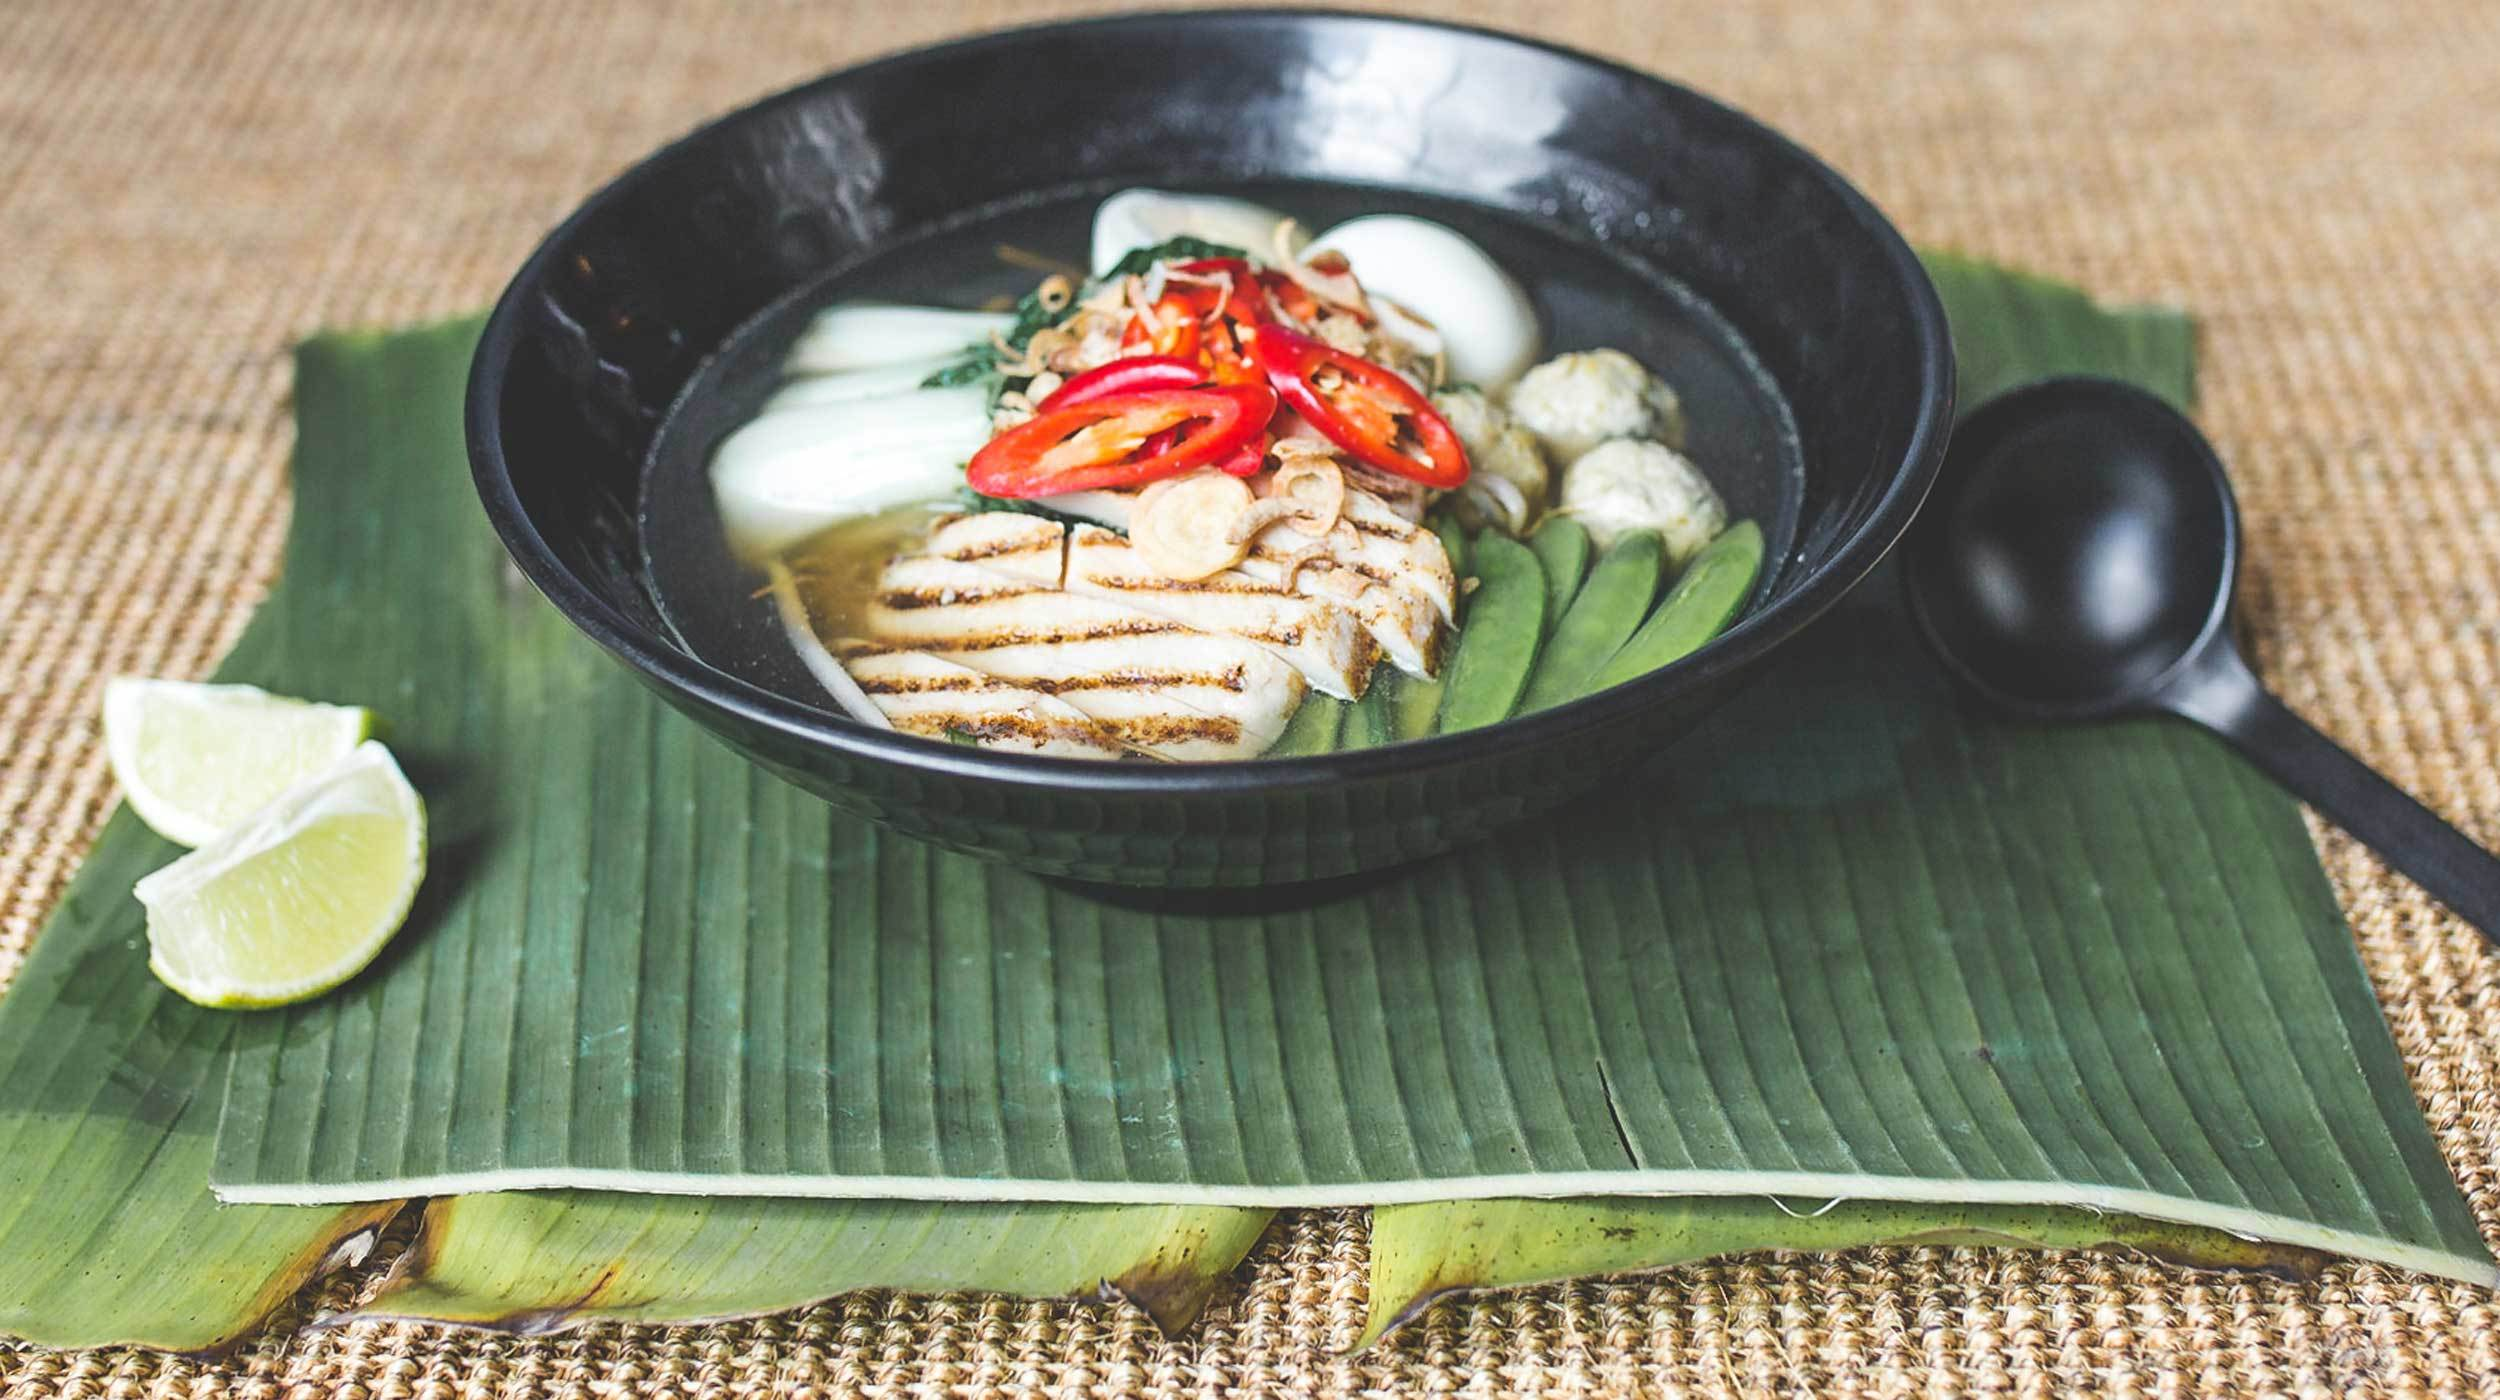 Indulge in traditional Chinese food